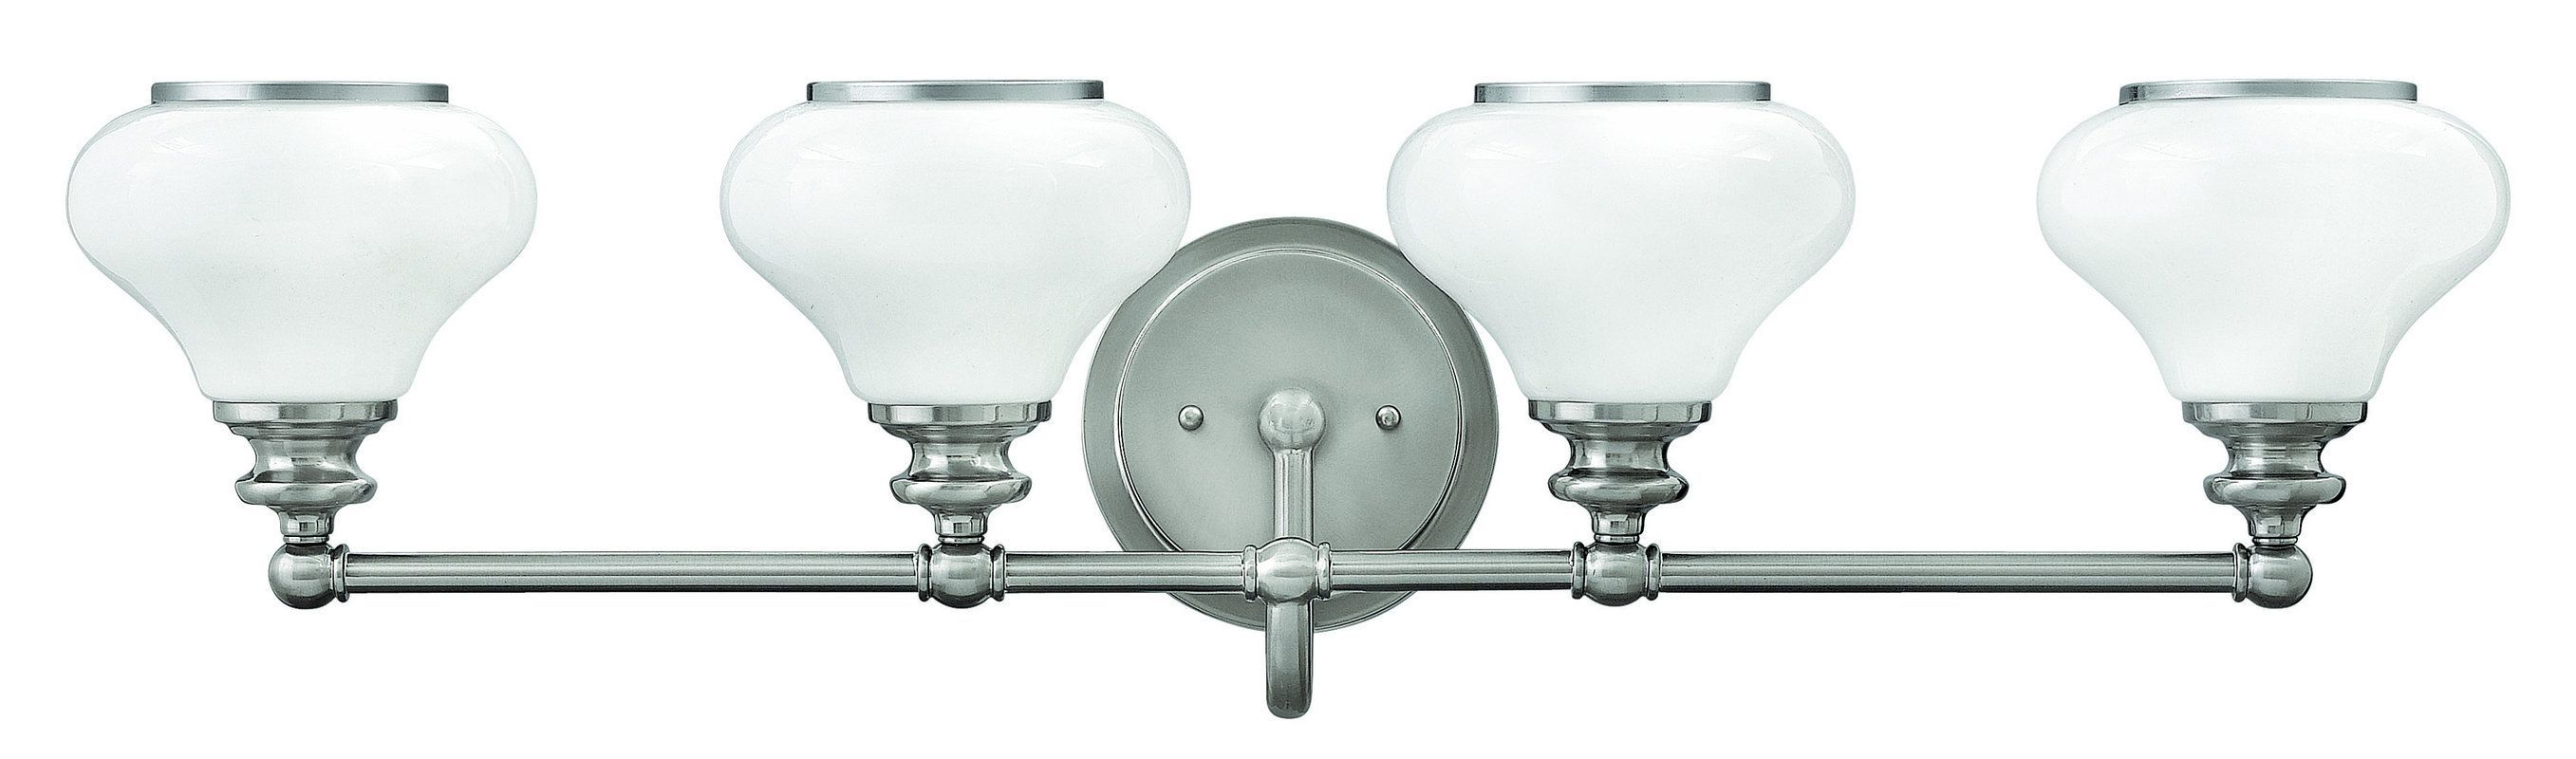 6862dc88ca8 Hinkley Lighting 56554 4 Light Bathroom Vanity Light with Frosted Glass  Shades f Brushed Nickel Indoor Lighting Bathroom Fixtures Vanity Light